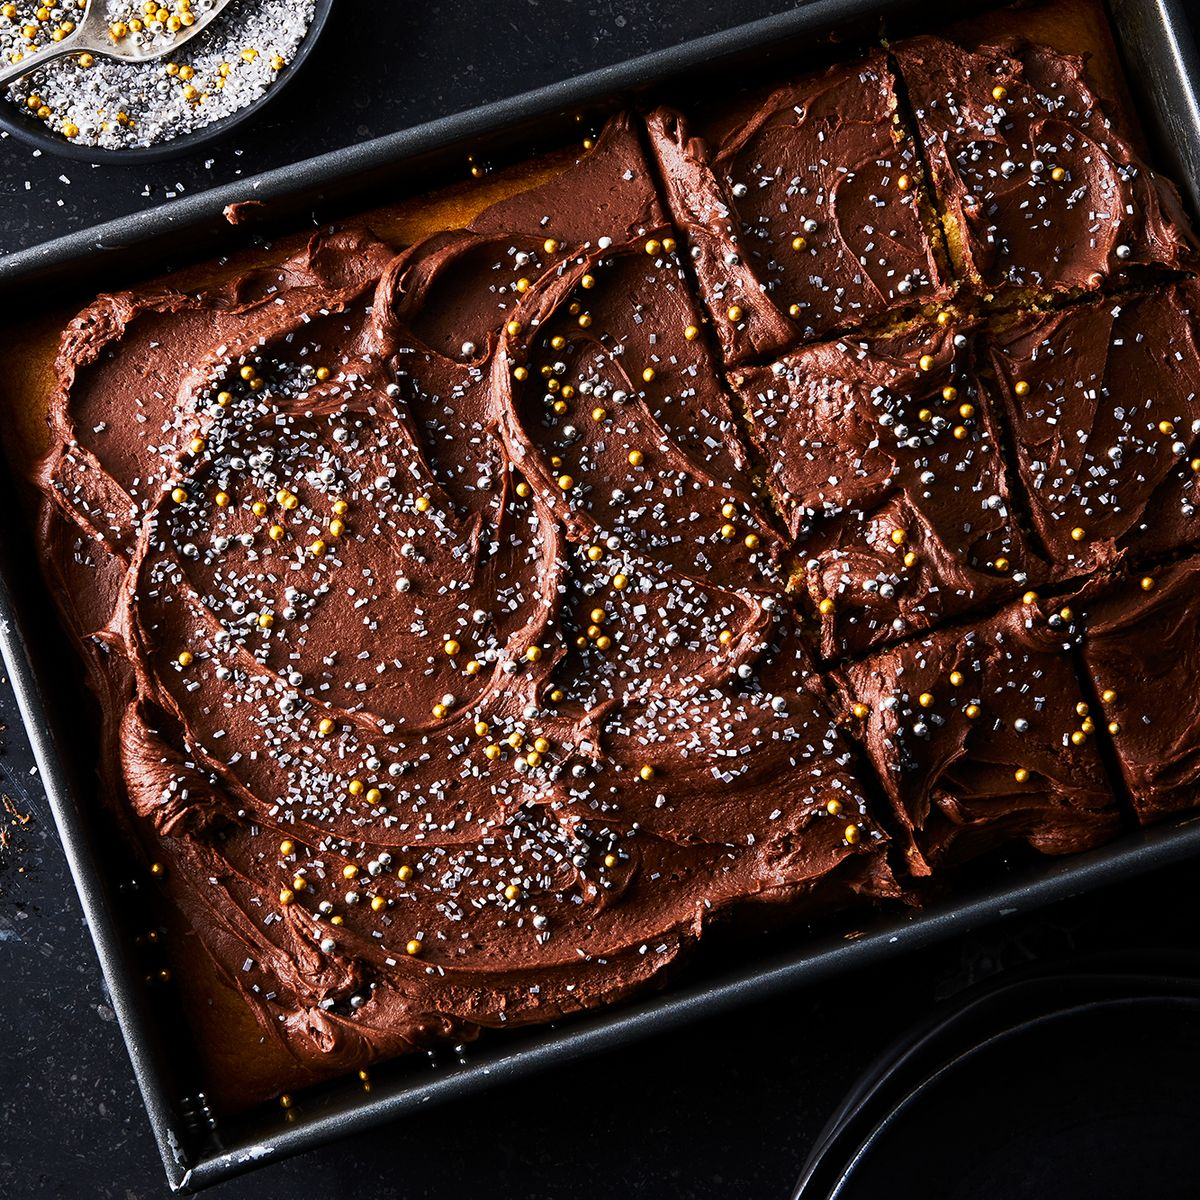 Peanut Butter Sheet Cake With Chocolate Cream Cheese Frosting Recipe On Food52